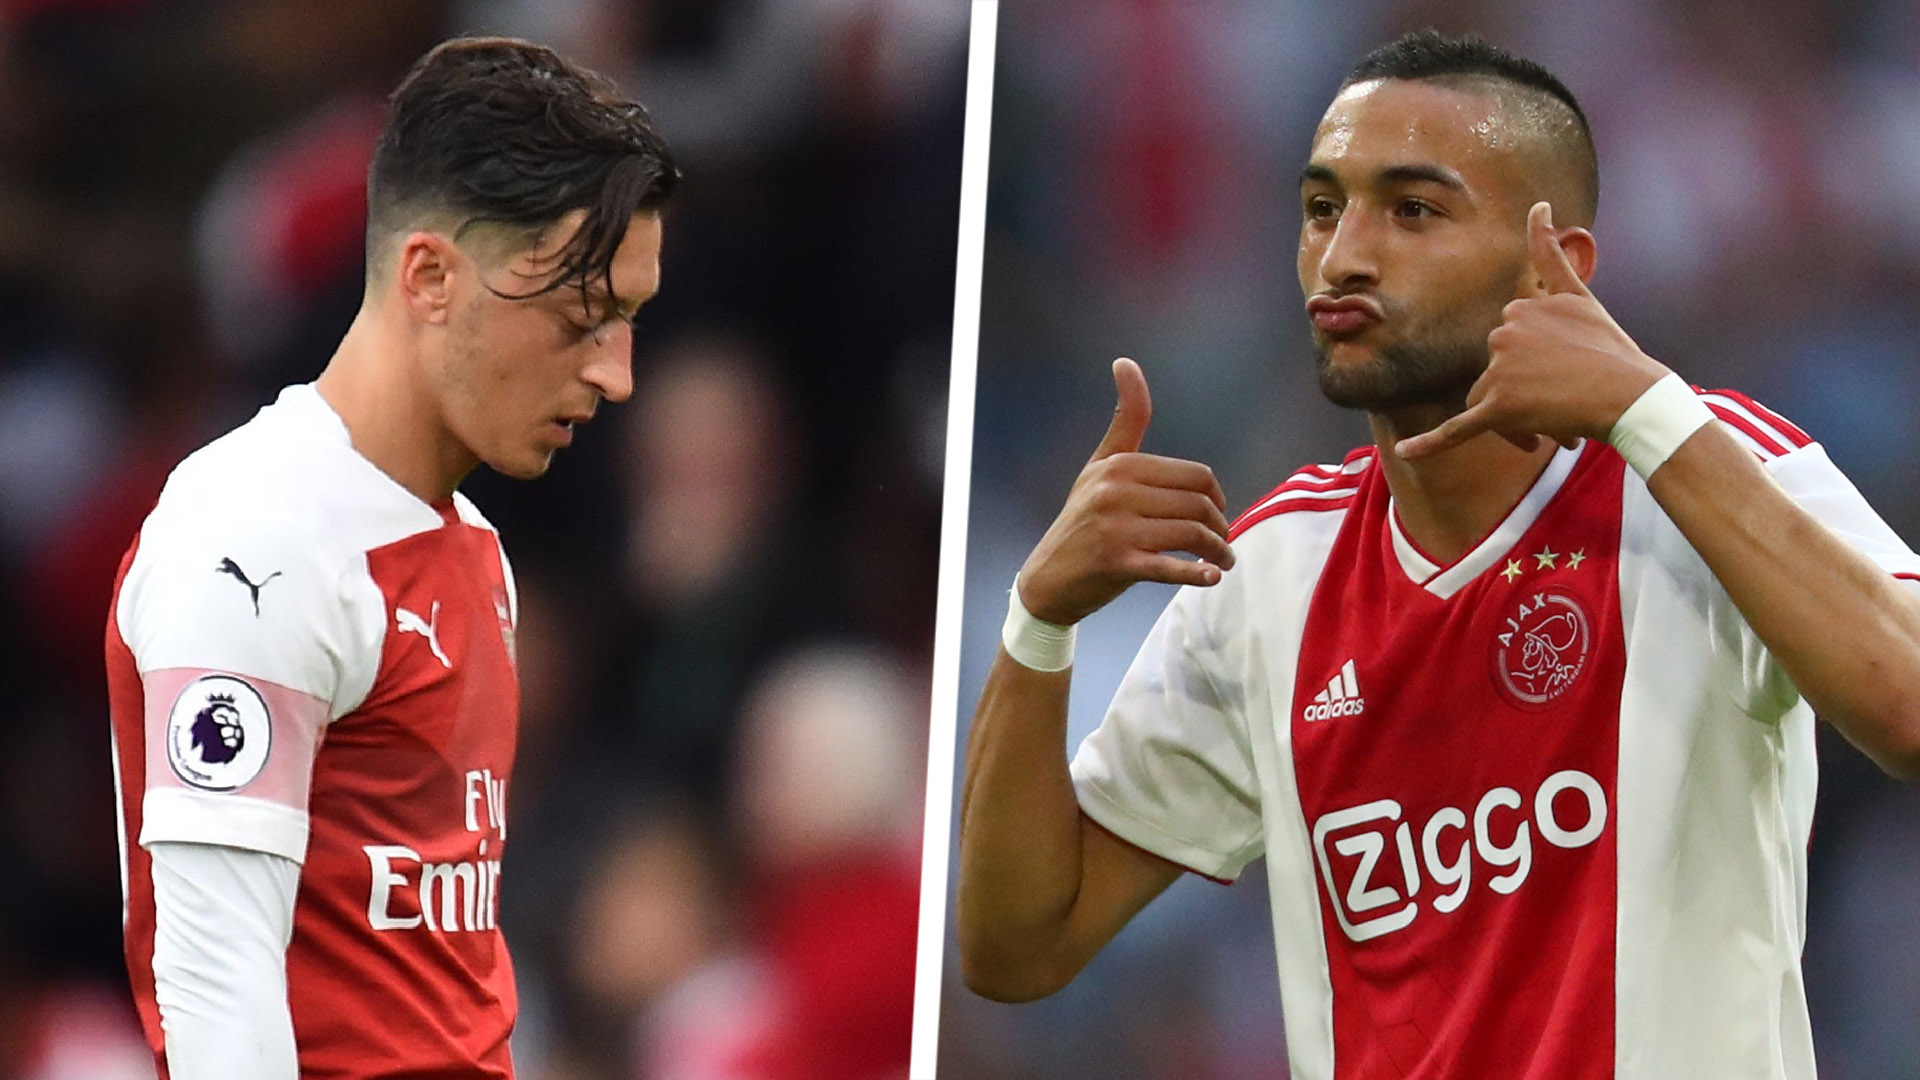 Overmars advice for Arsenal - Sell Ozil and buy Ajax's Ziyech